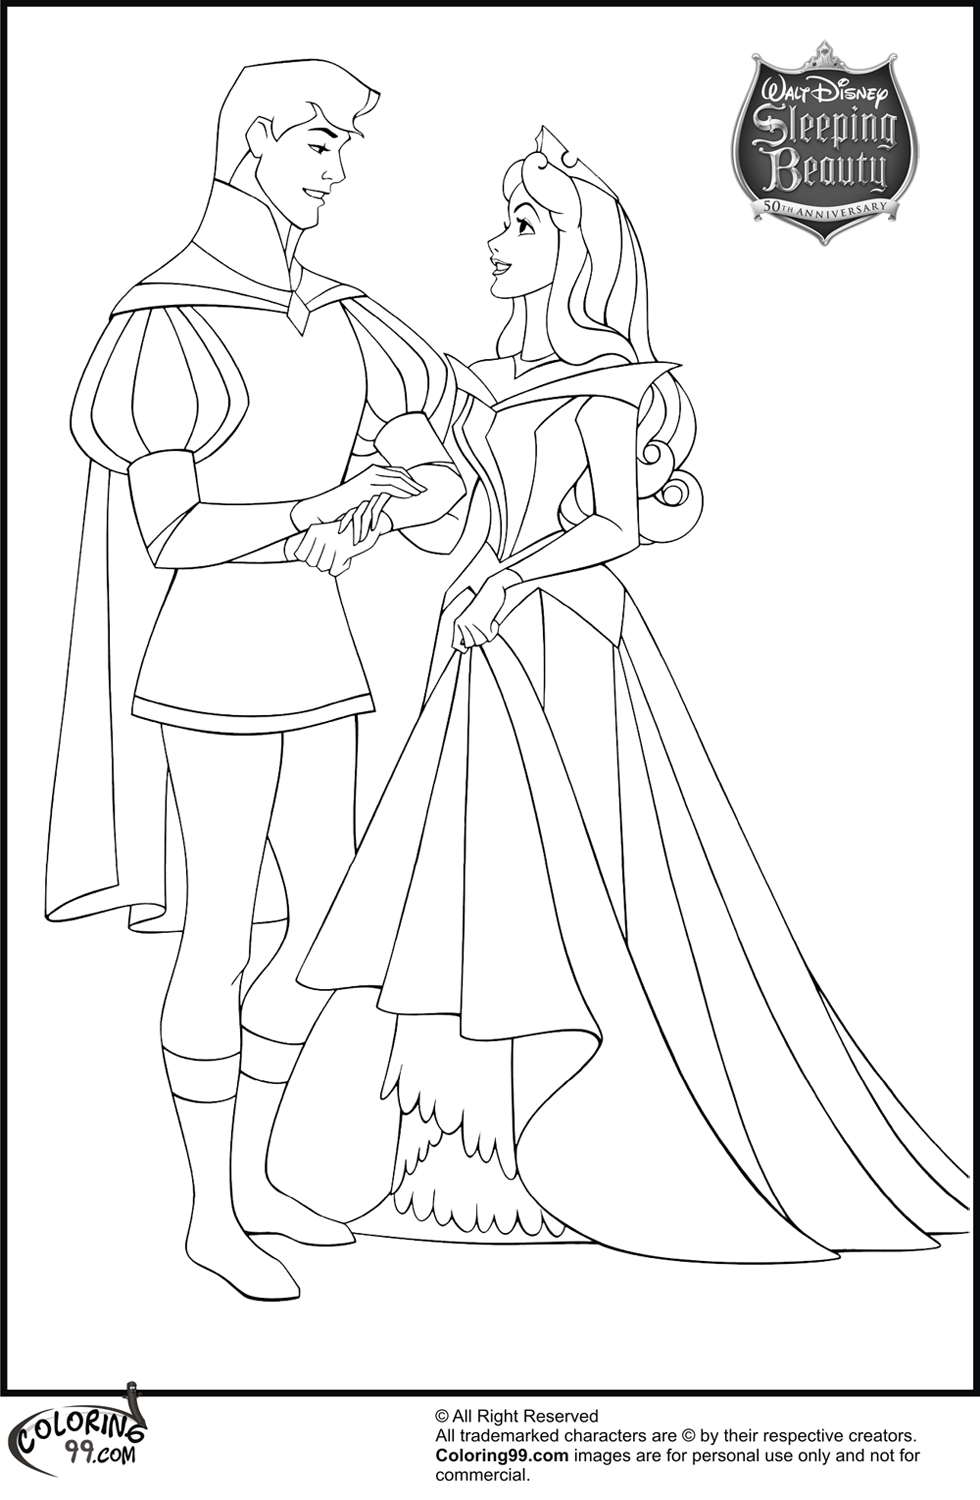 prince coloring pages the prince of egypt coloring pages pages prince coloring